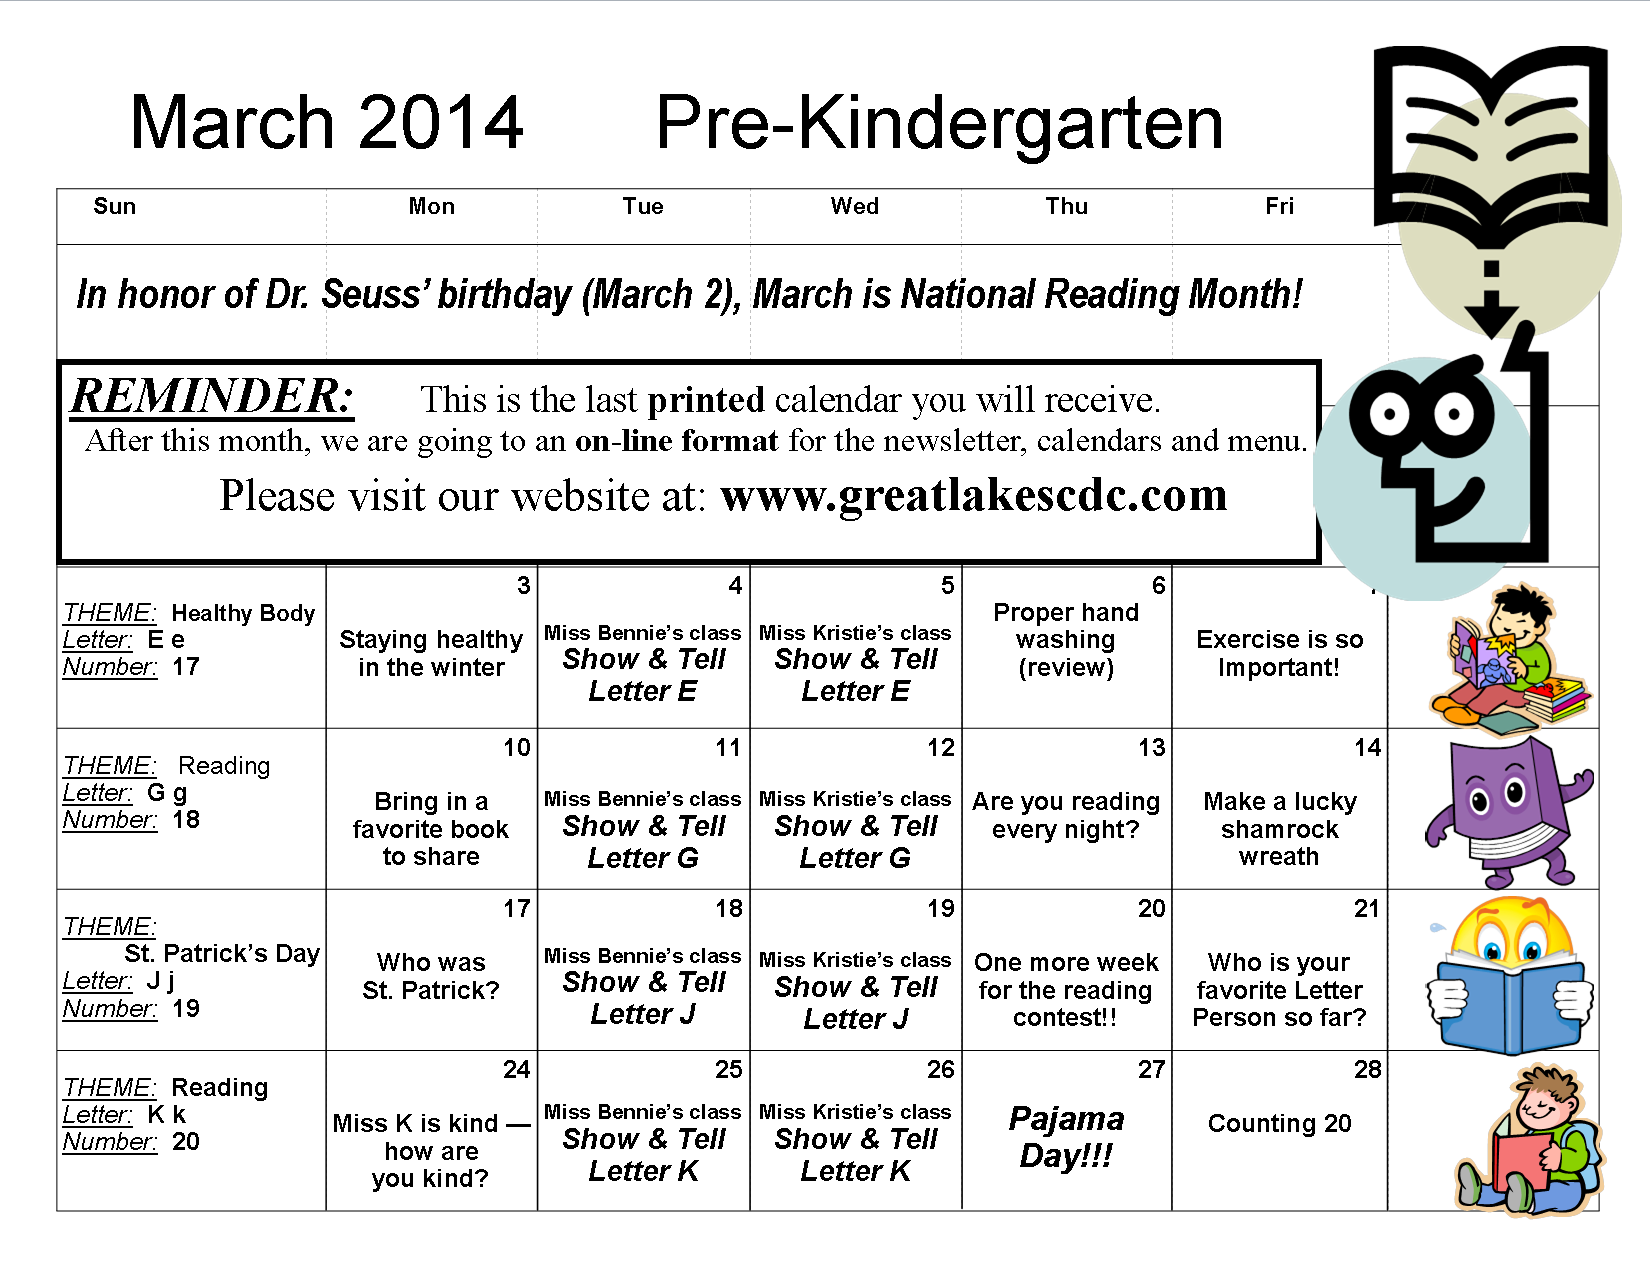 March 2014 Pre-Kindergarten